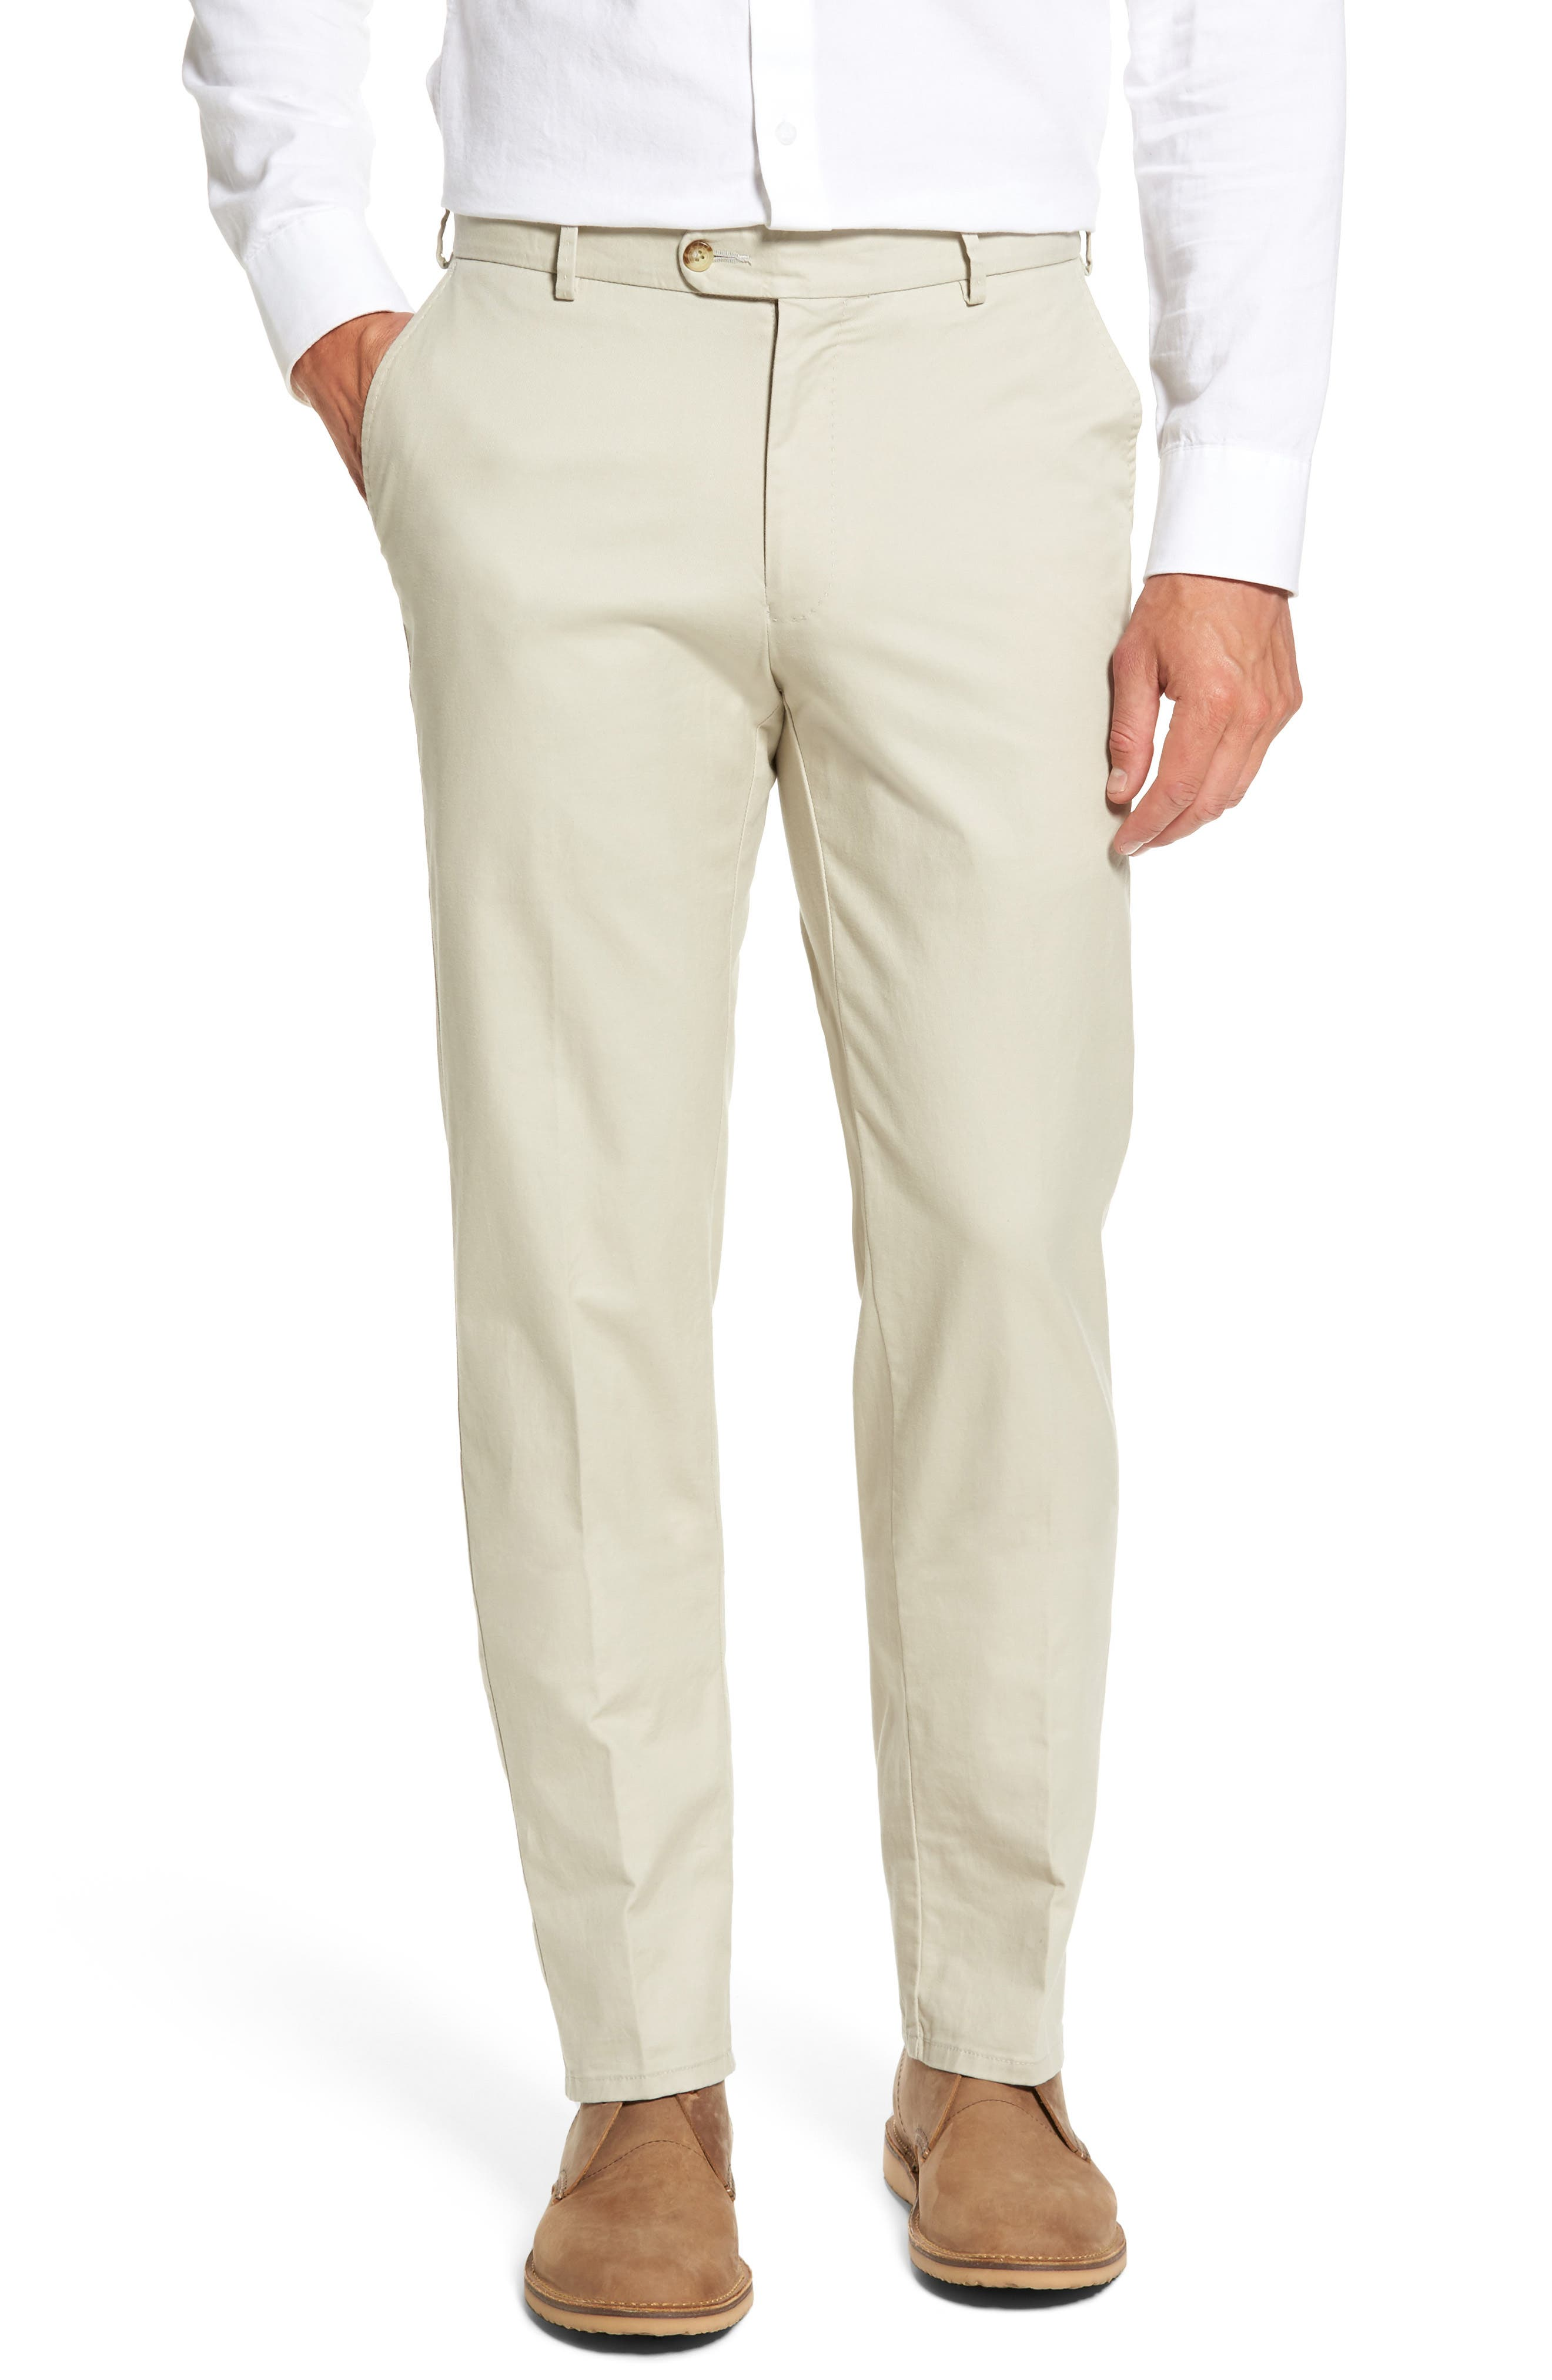 Twill Pants,                         Main,                         color, Light Sand